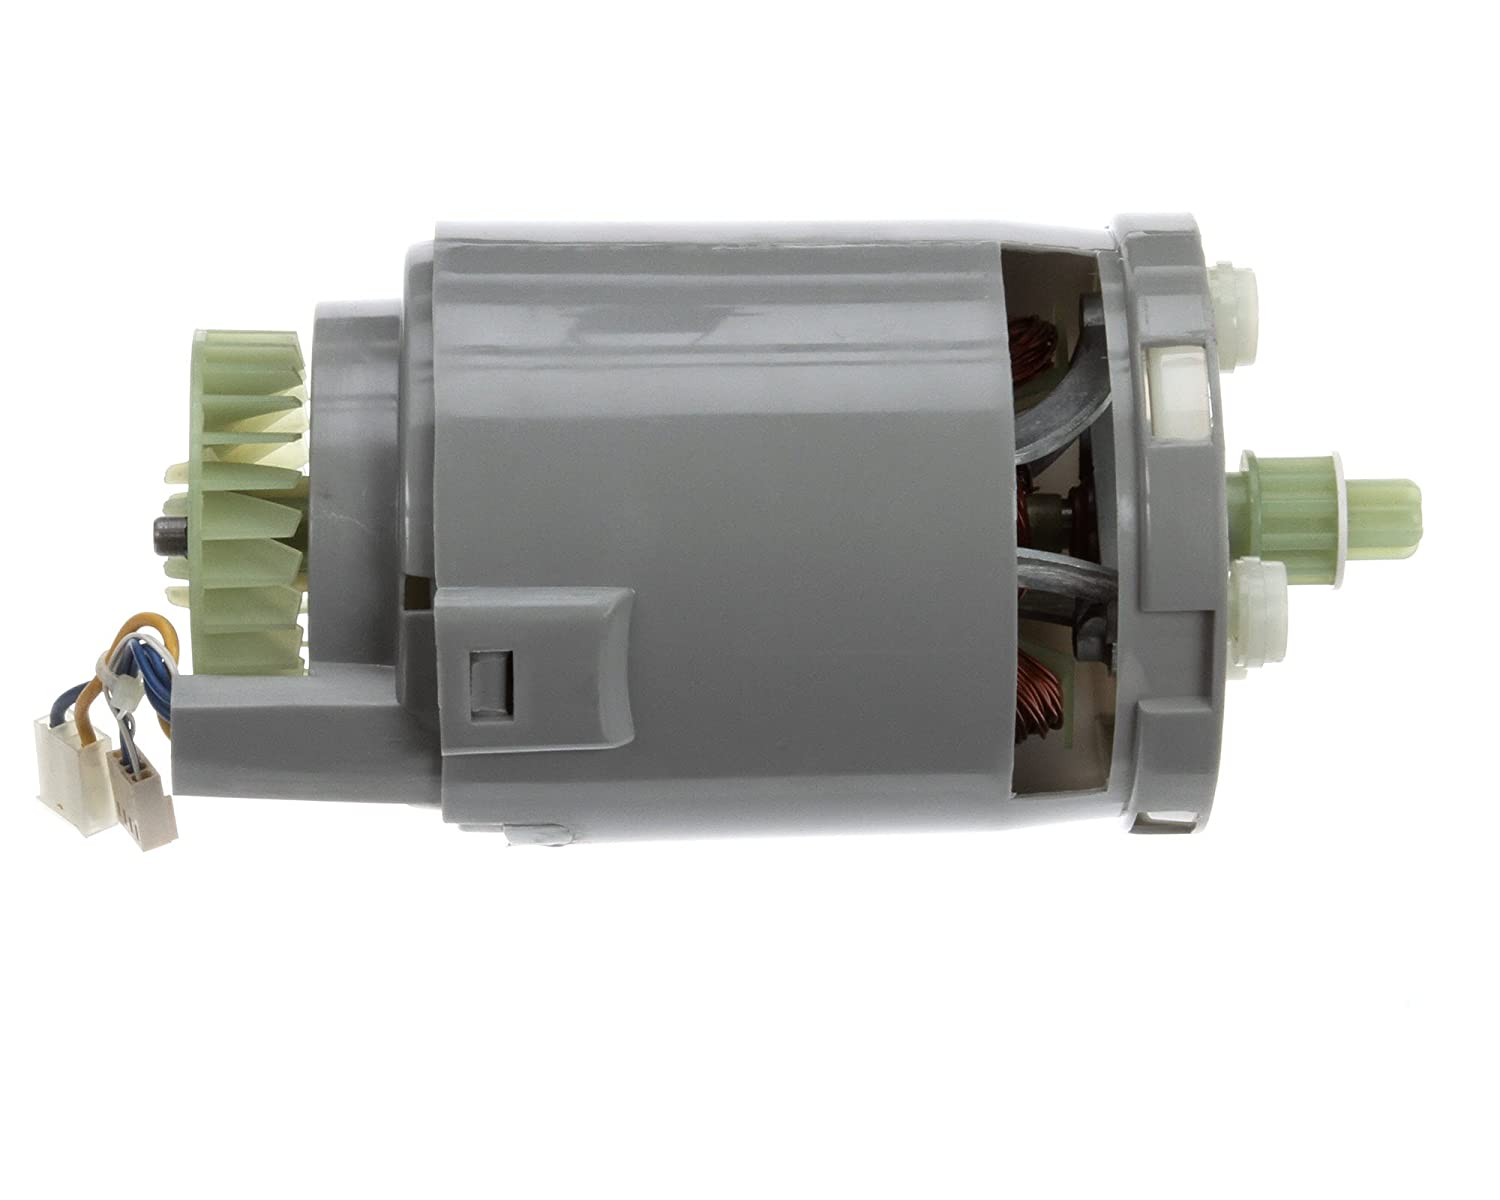 Image of Home and Kitchen Hamilton Beach 900665719 Motor Complete for Model Cpm500/Cpm700